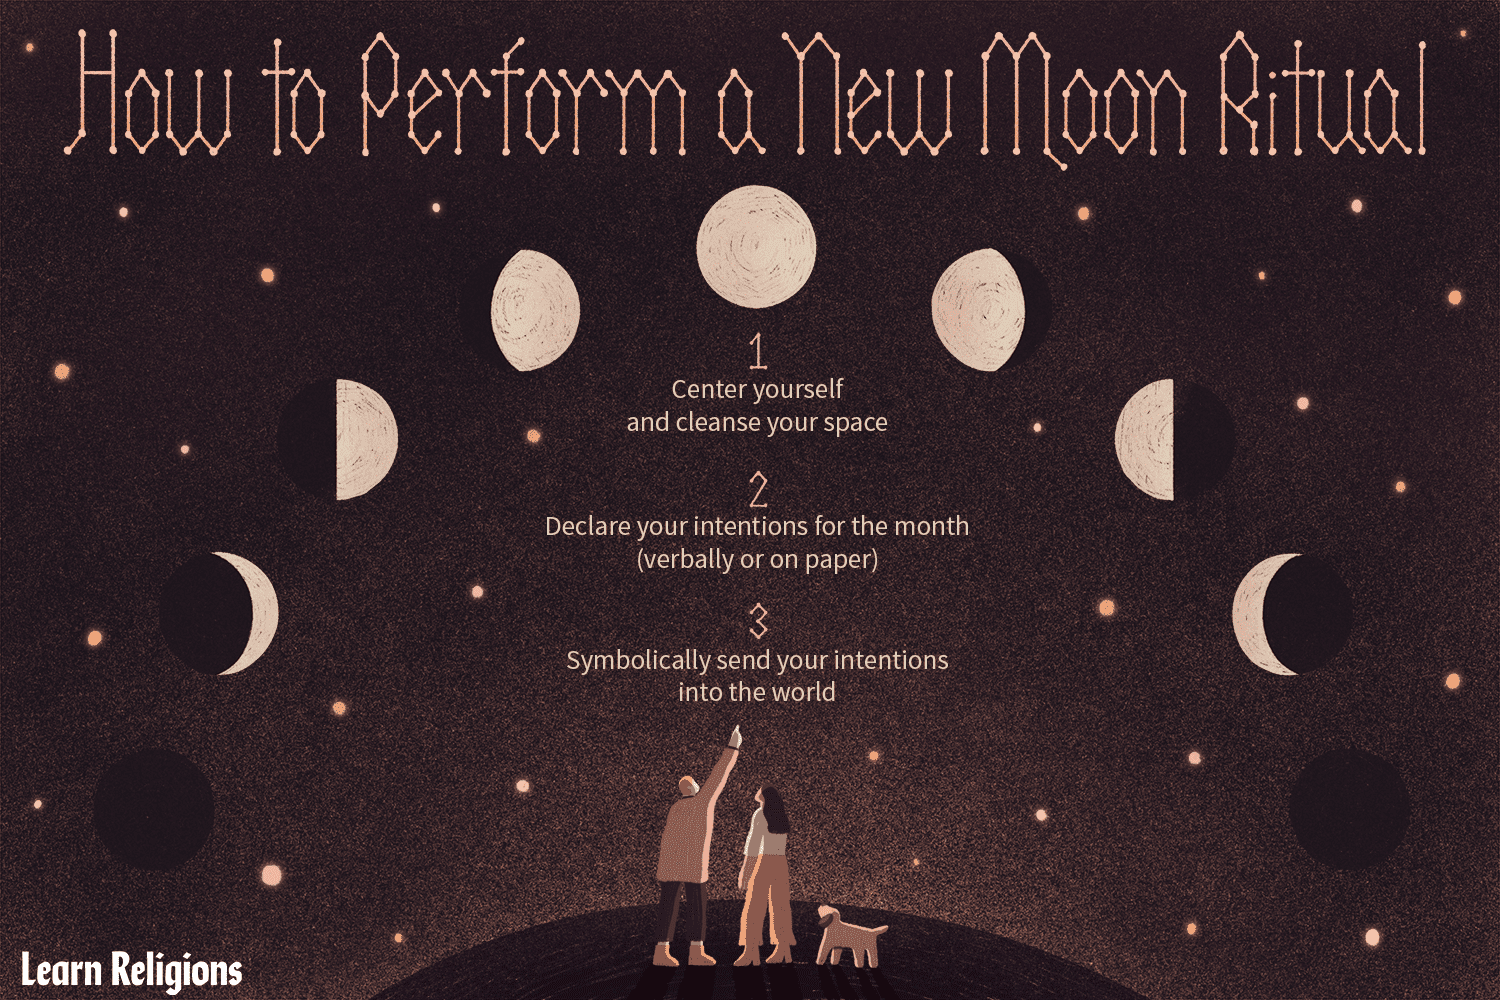 Use These Tips to Perform a Successful New Moon Ritual